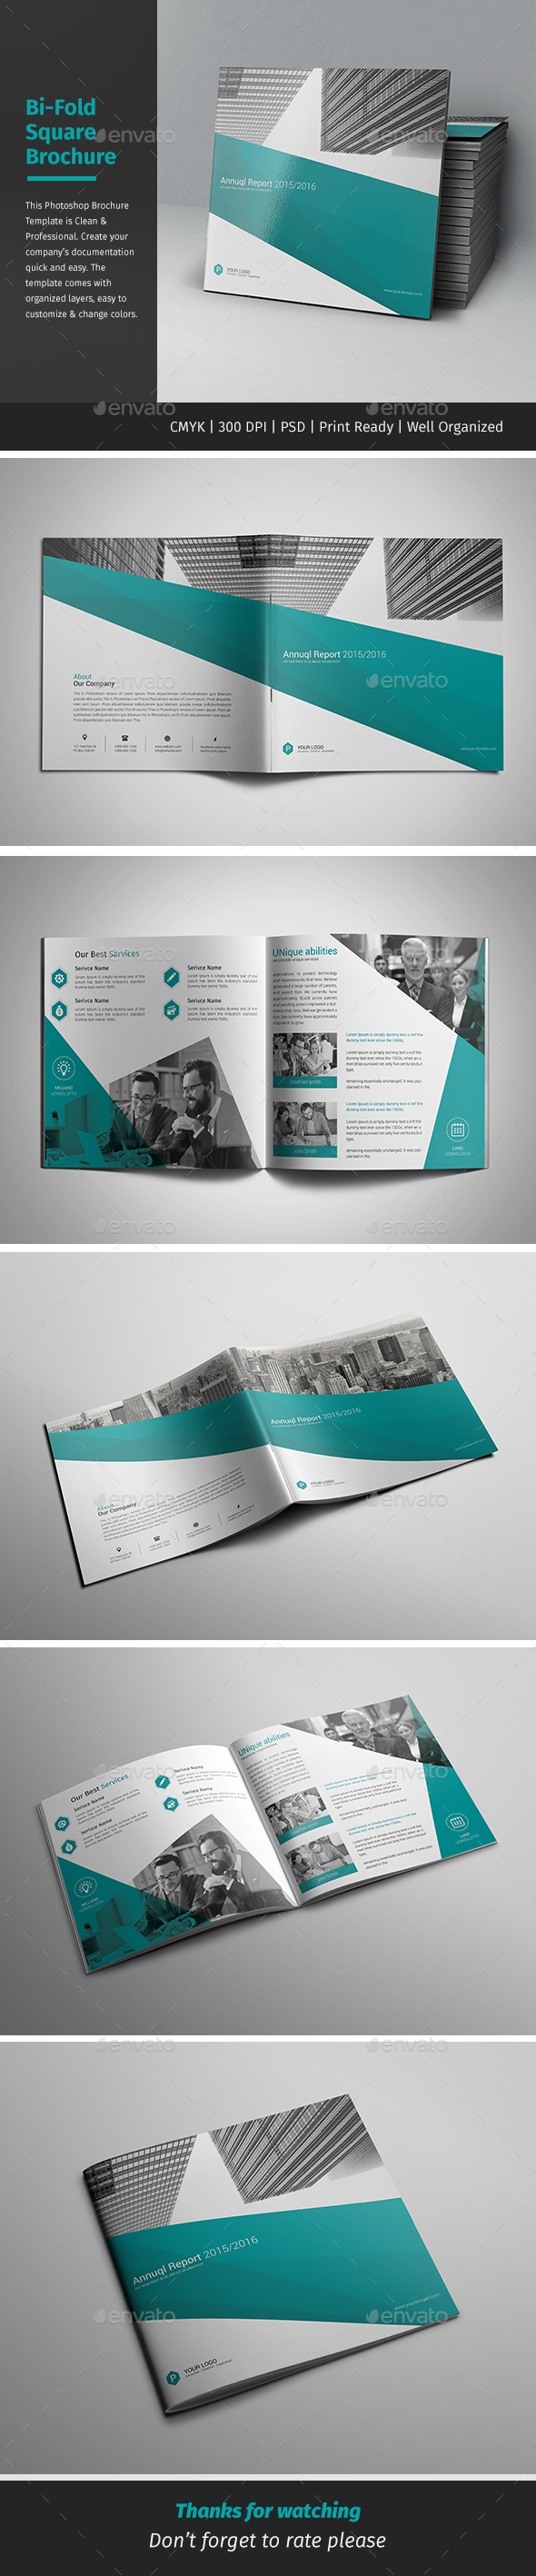 Corporate Bi-fold Square Brochure 05 - Corporate Brochures